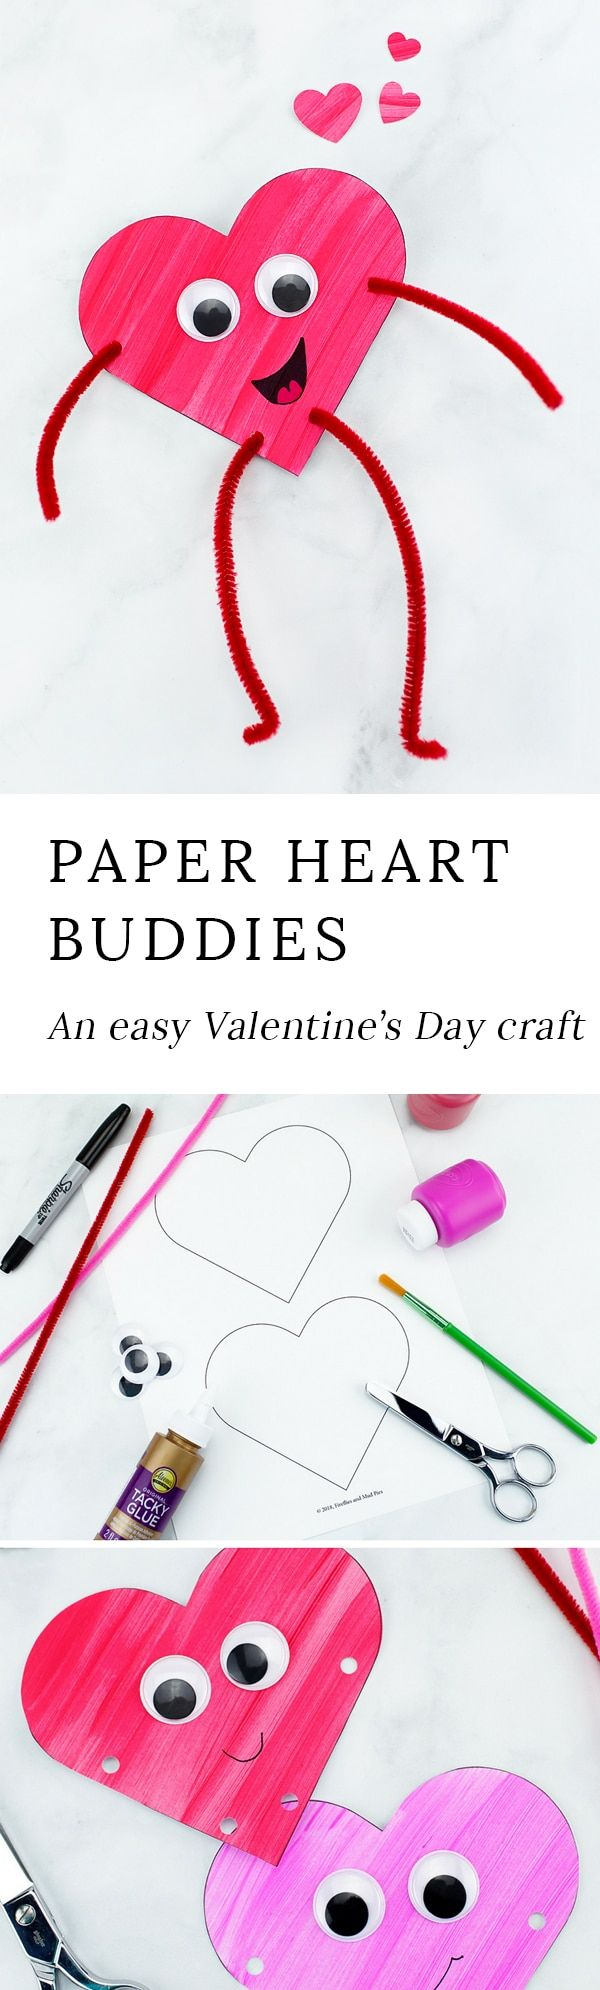 Looking for an easy Valentine's Day craft for kids? Colorful and fun Heart Buddies,made from our free template and basic craft supplies, are perfect for home or school! via @https://www.pinterest.com/fireflymudpie/